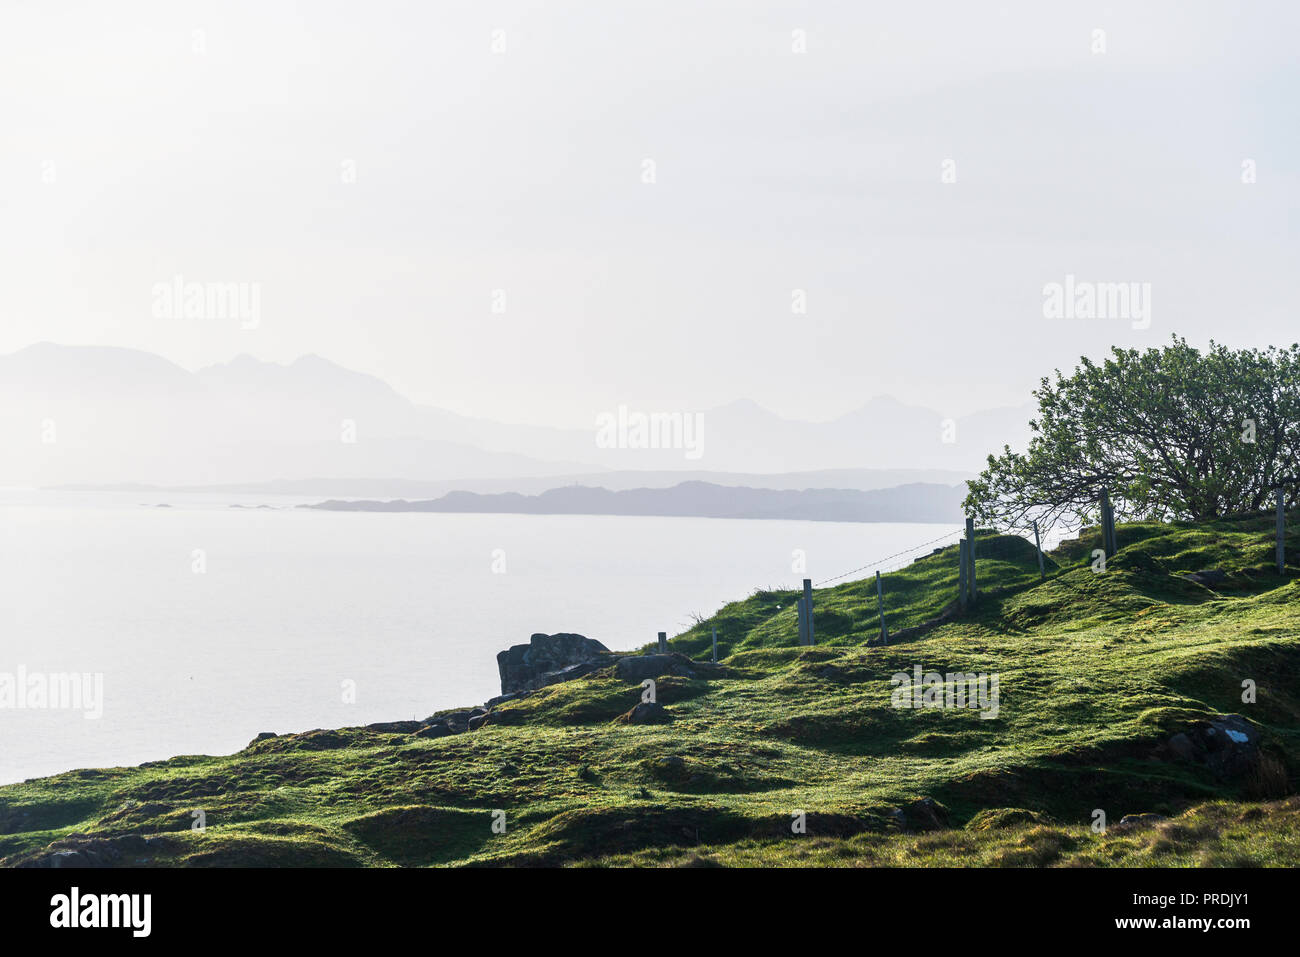 landscapes of the Isle of Skye, Scotland - Stock Image